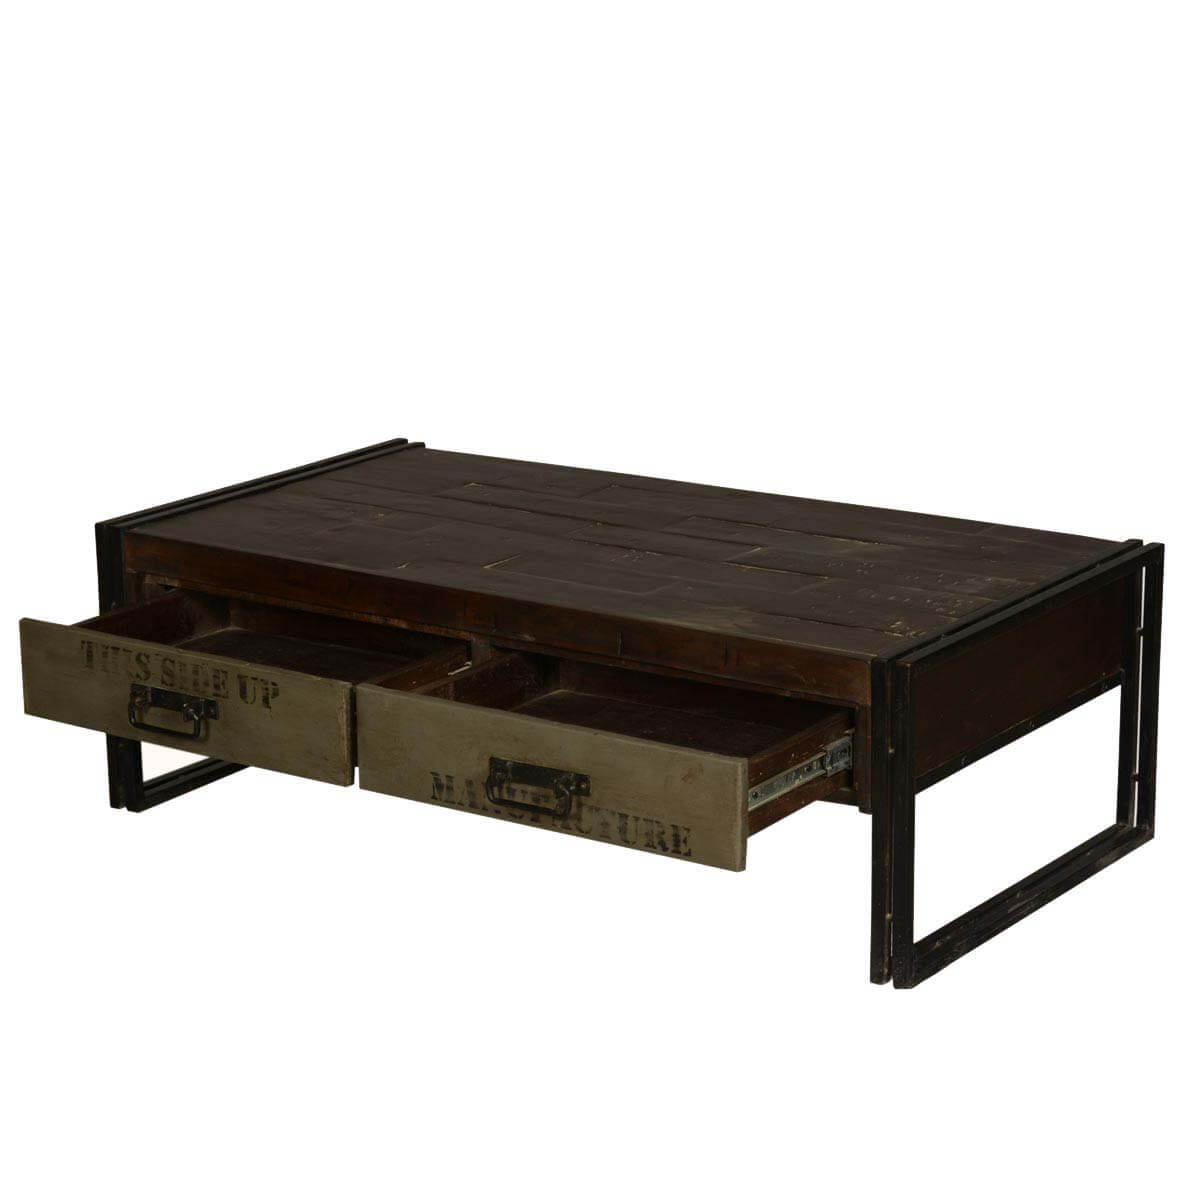 Philadelphia modern rustic reclaimed wood metal coffee table for Reclaimed teak wood coffee table